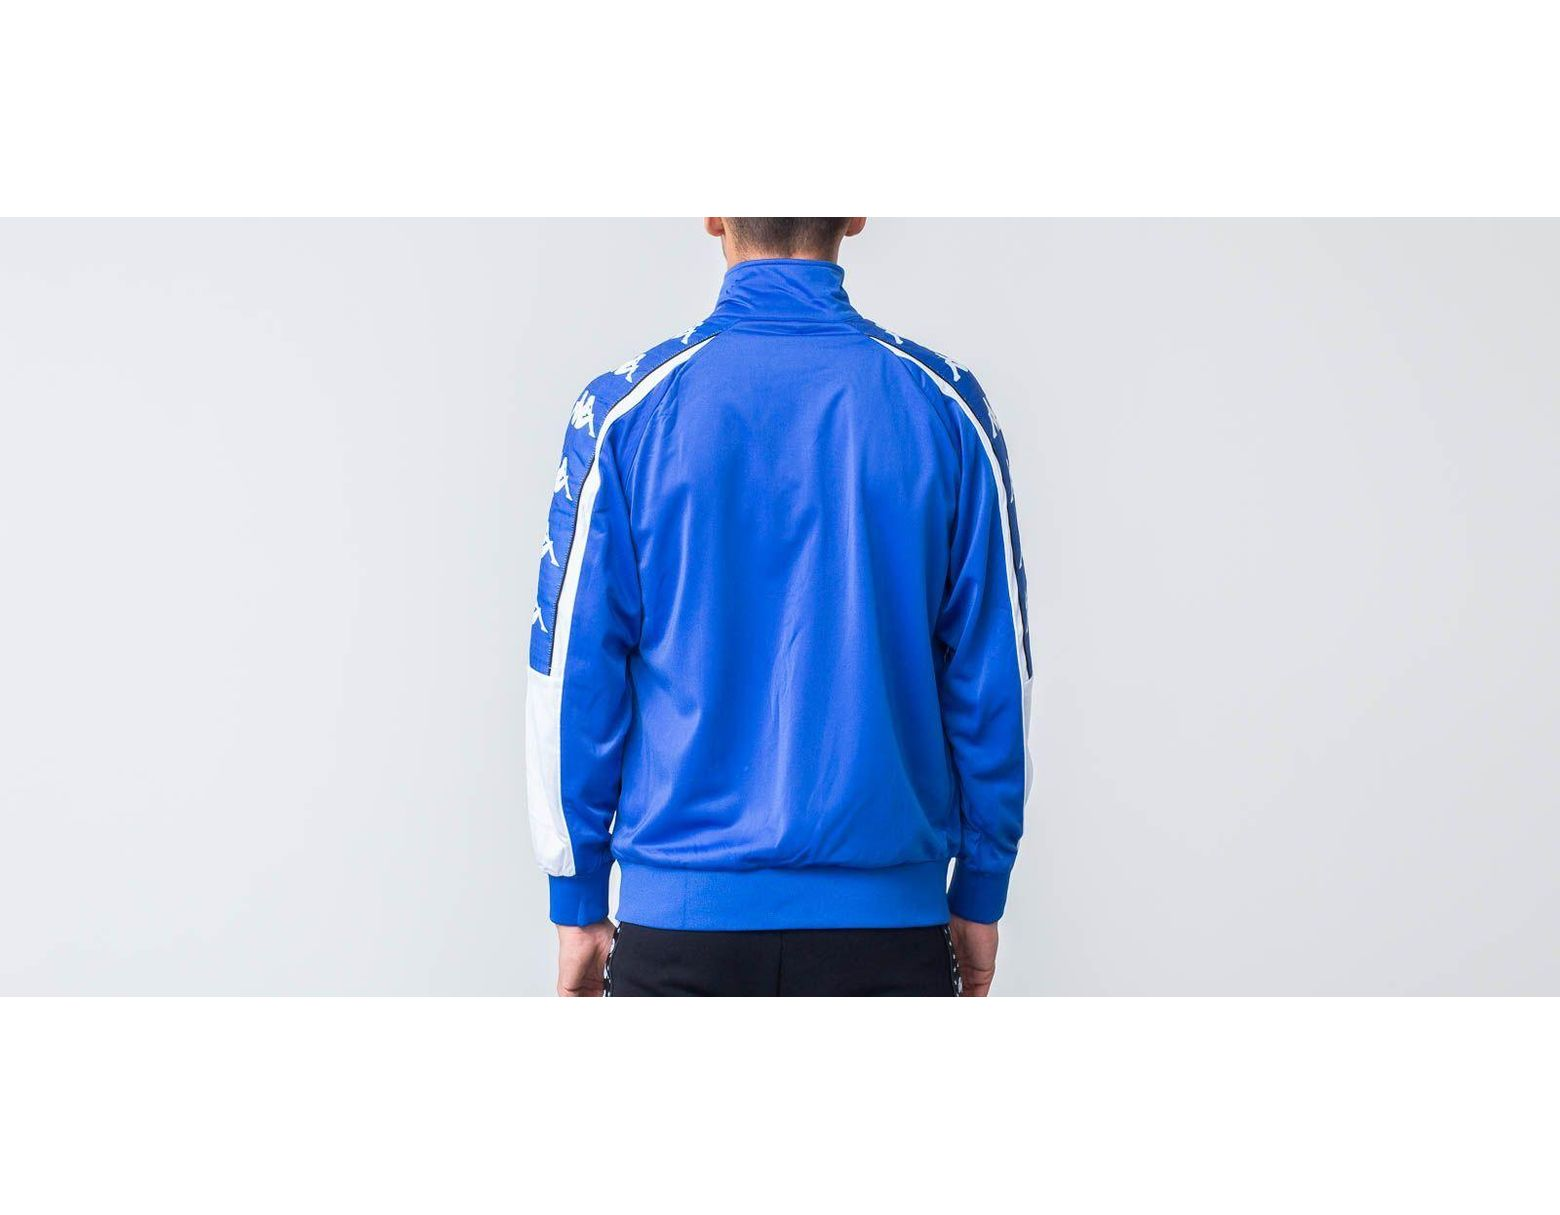 b173de1a47 Kappa Banda 10 Ahran Jacket Blue Royal/ White in Blue for Men - Save 40% -  Lyst